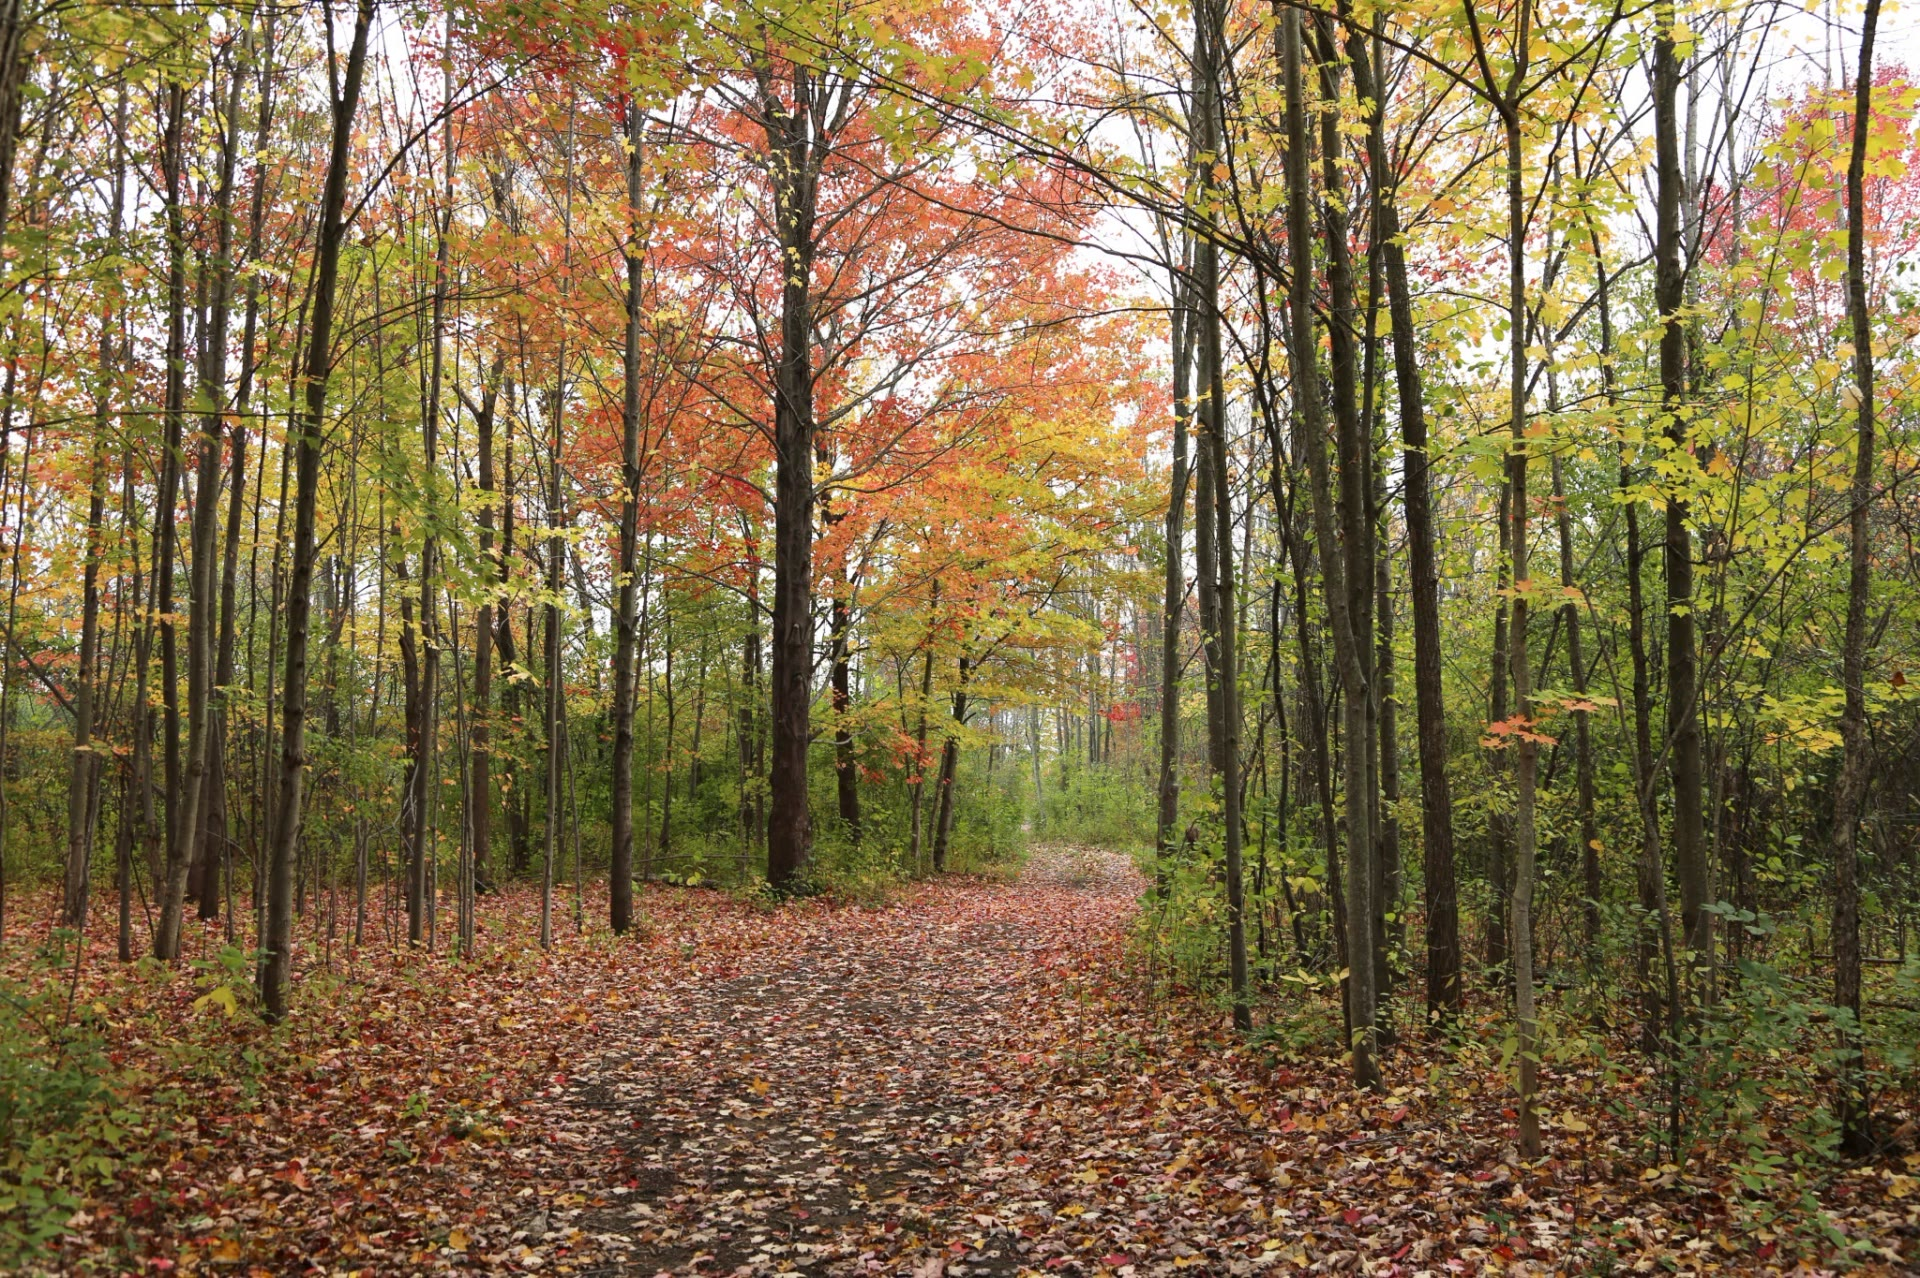 walking trail in the woods in autumn colors